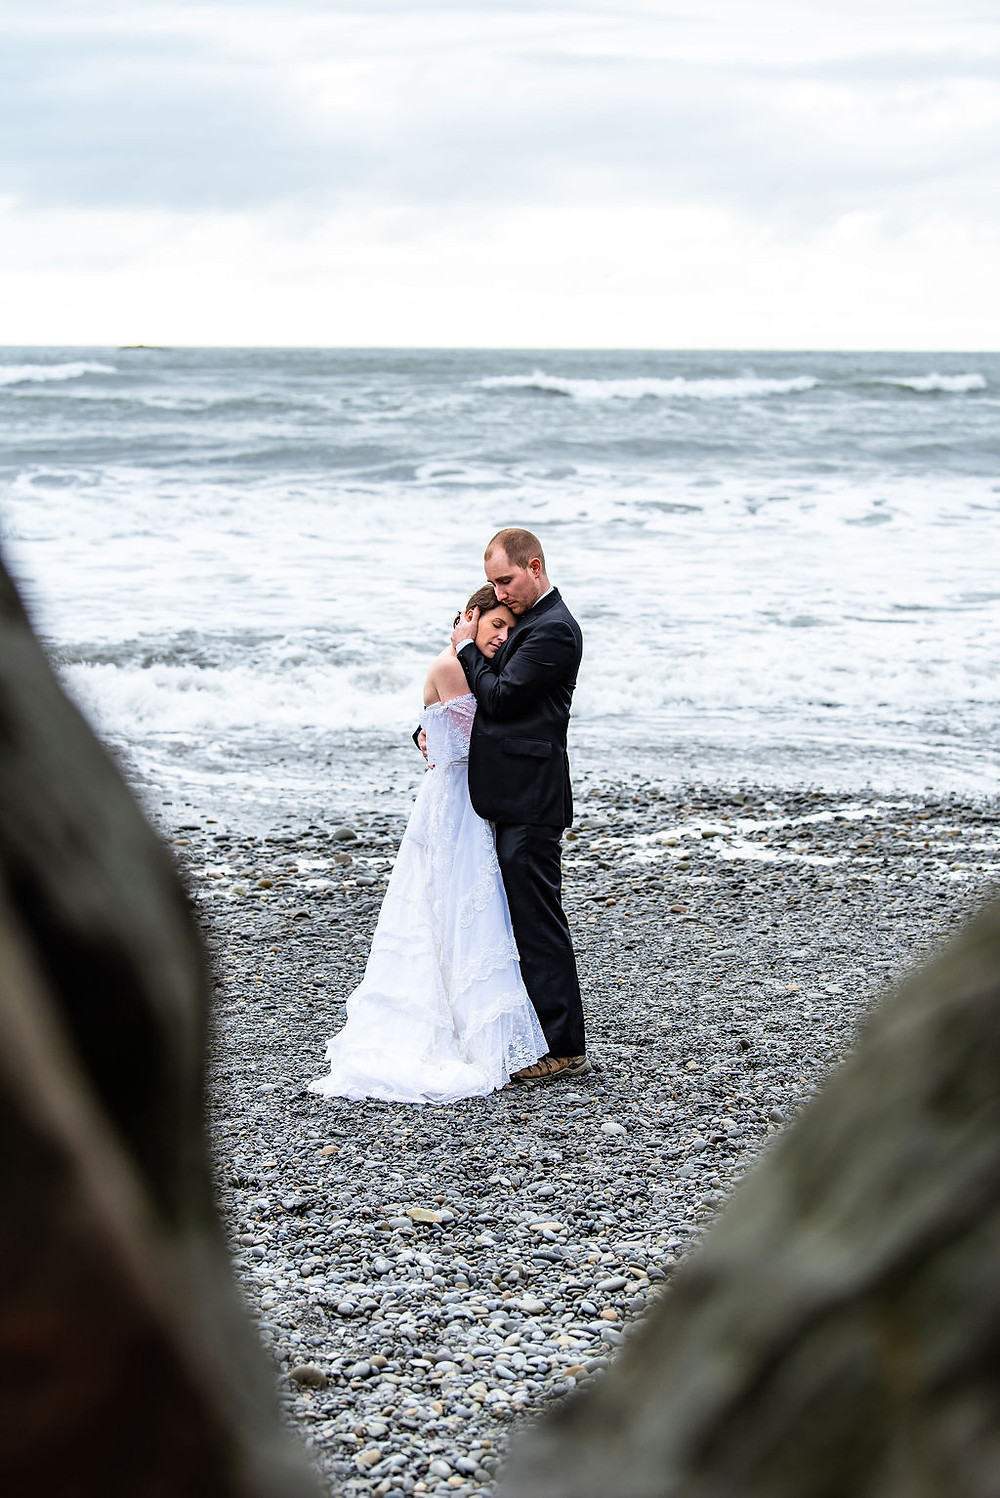 A groom hugs his bride on their adventure elopement day in Washington at Ruby Beach